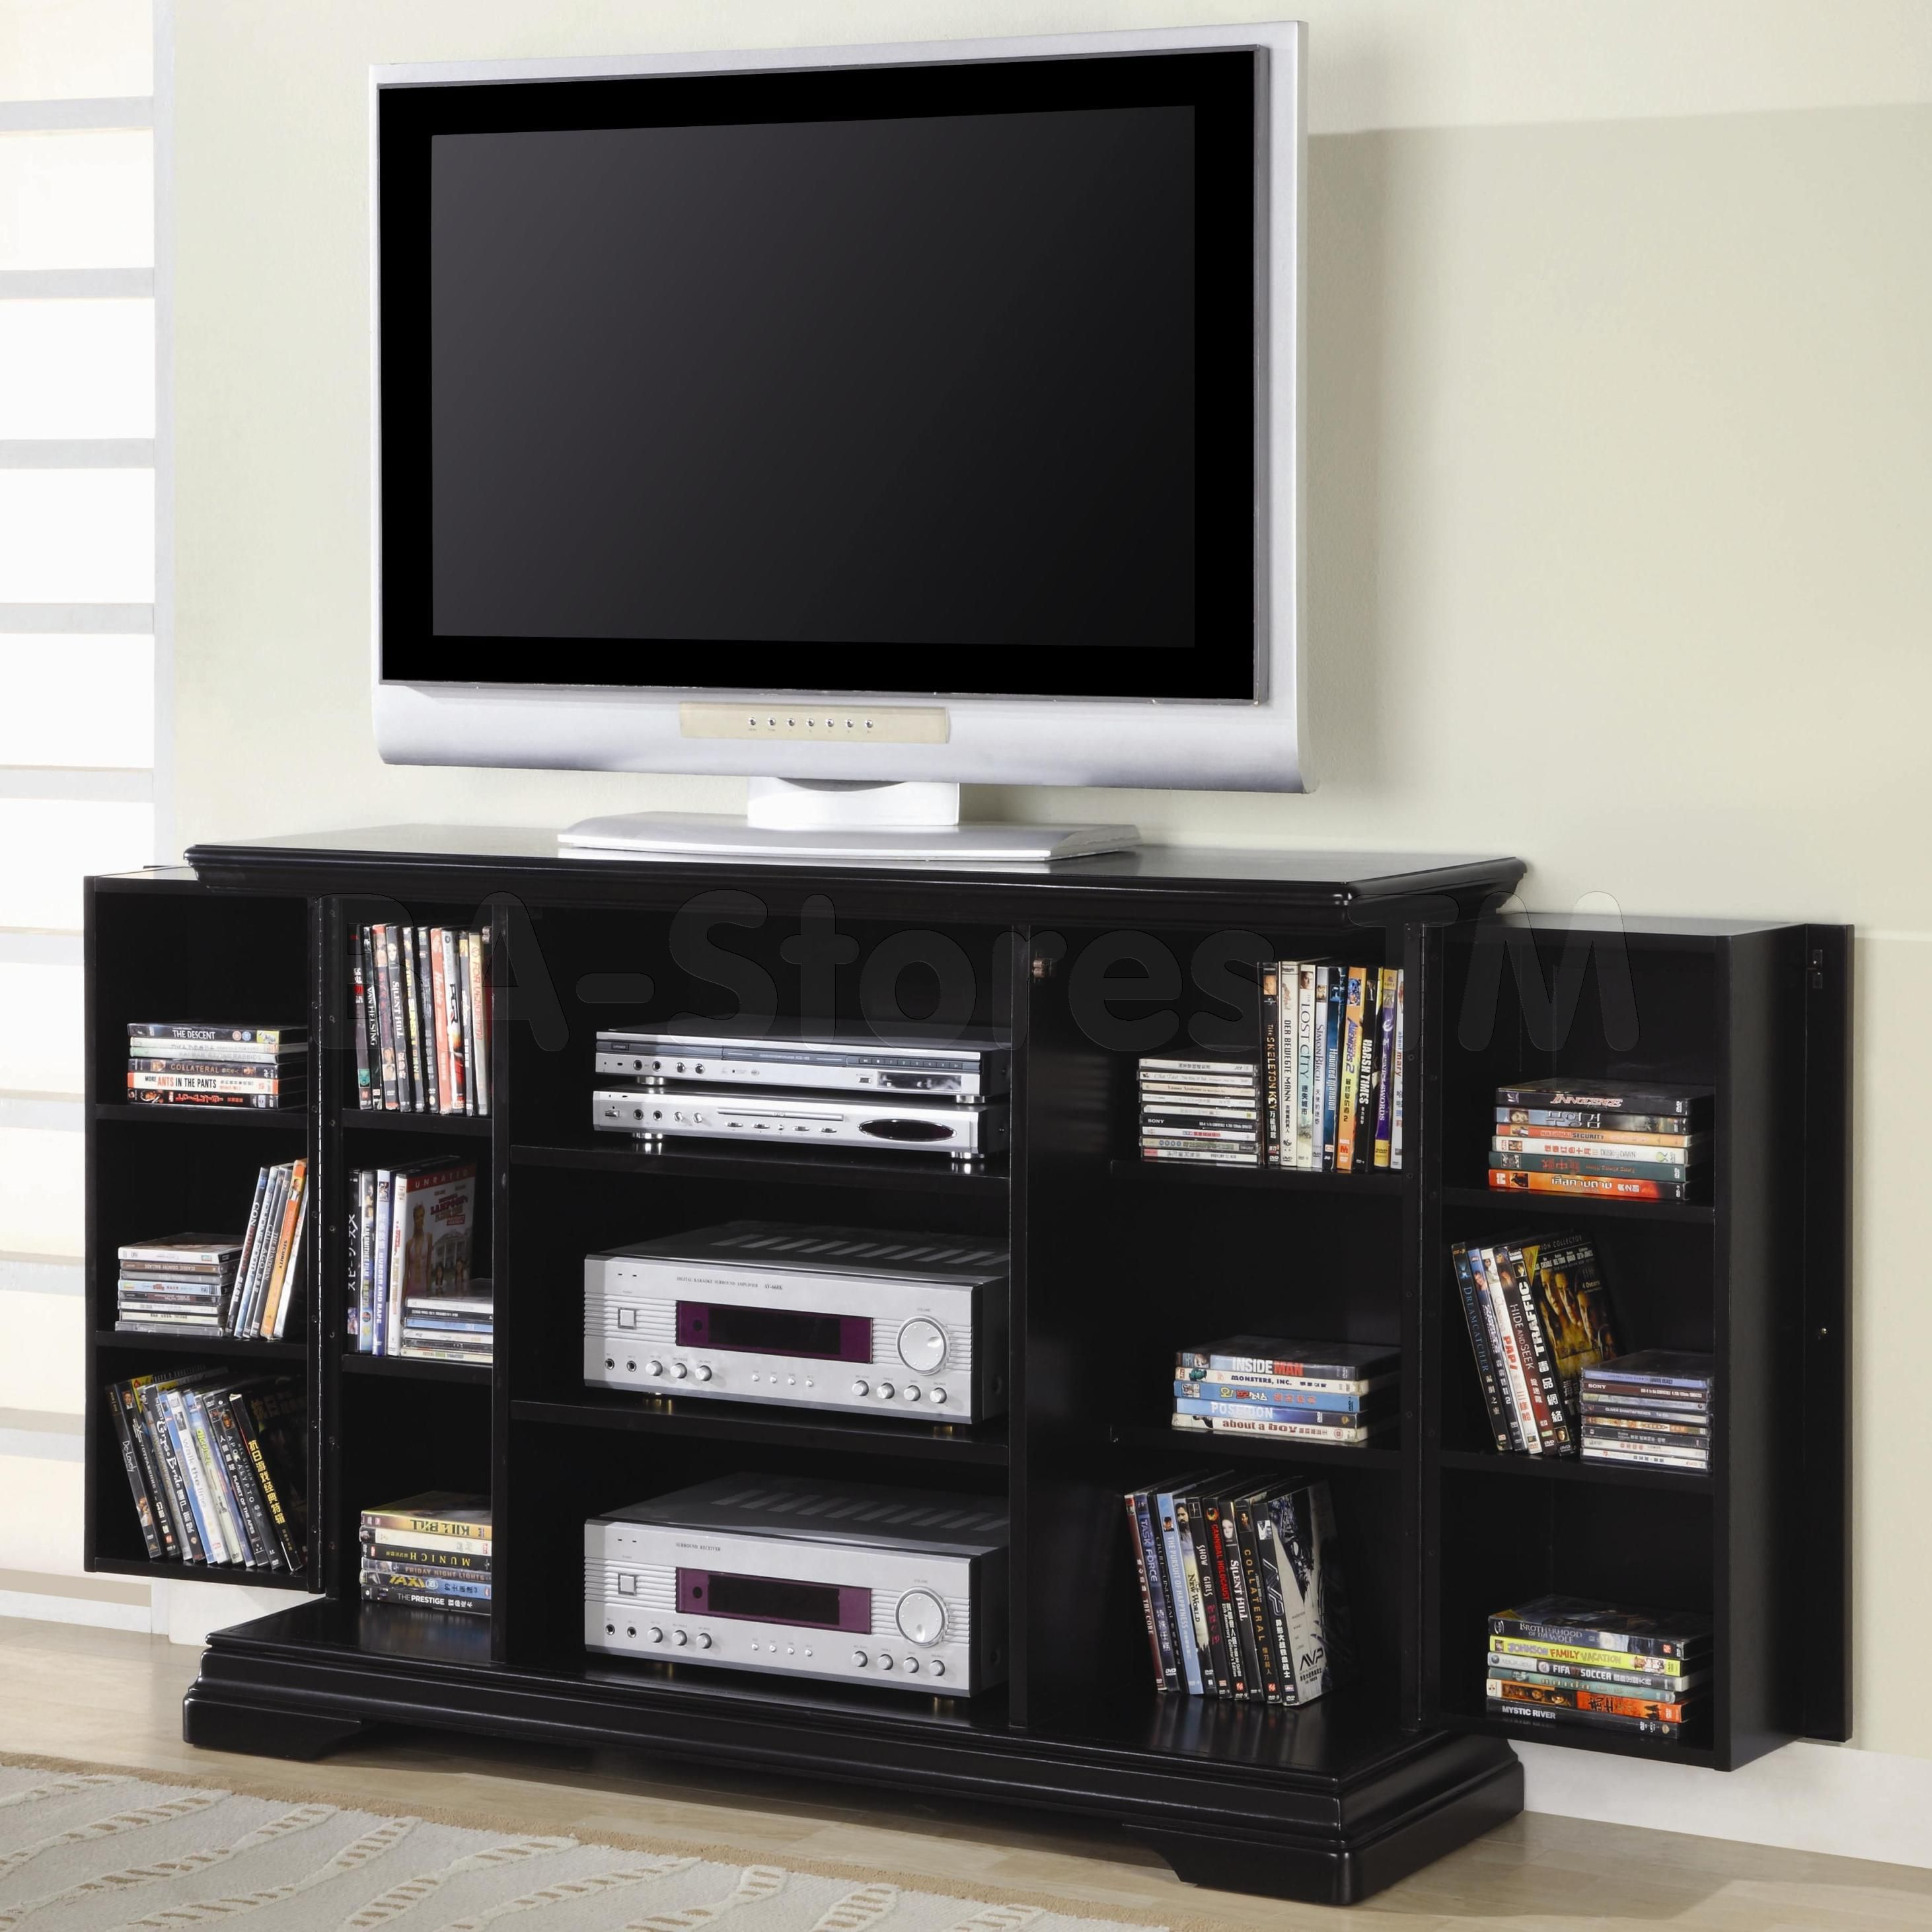 Pin de Eliezer Jimenez en Gamer  Tv stand walmart Entertainment Center y Home